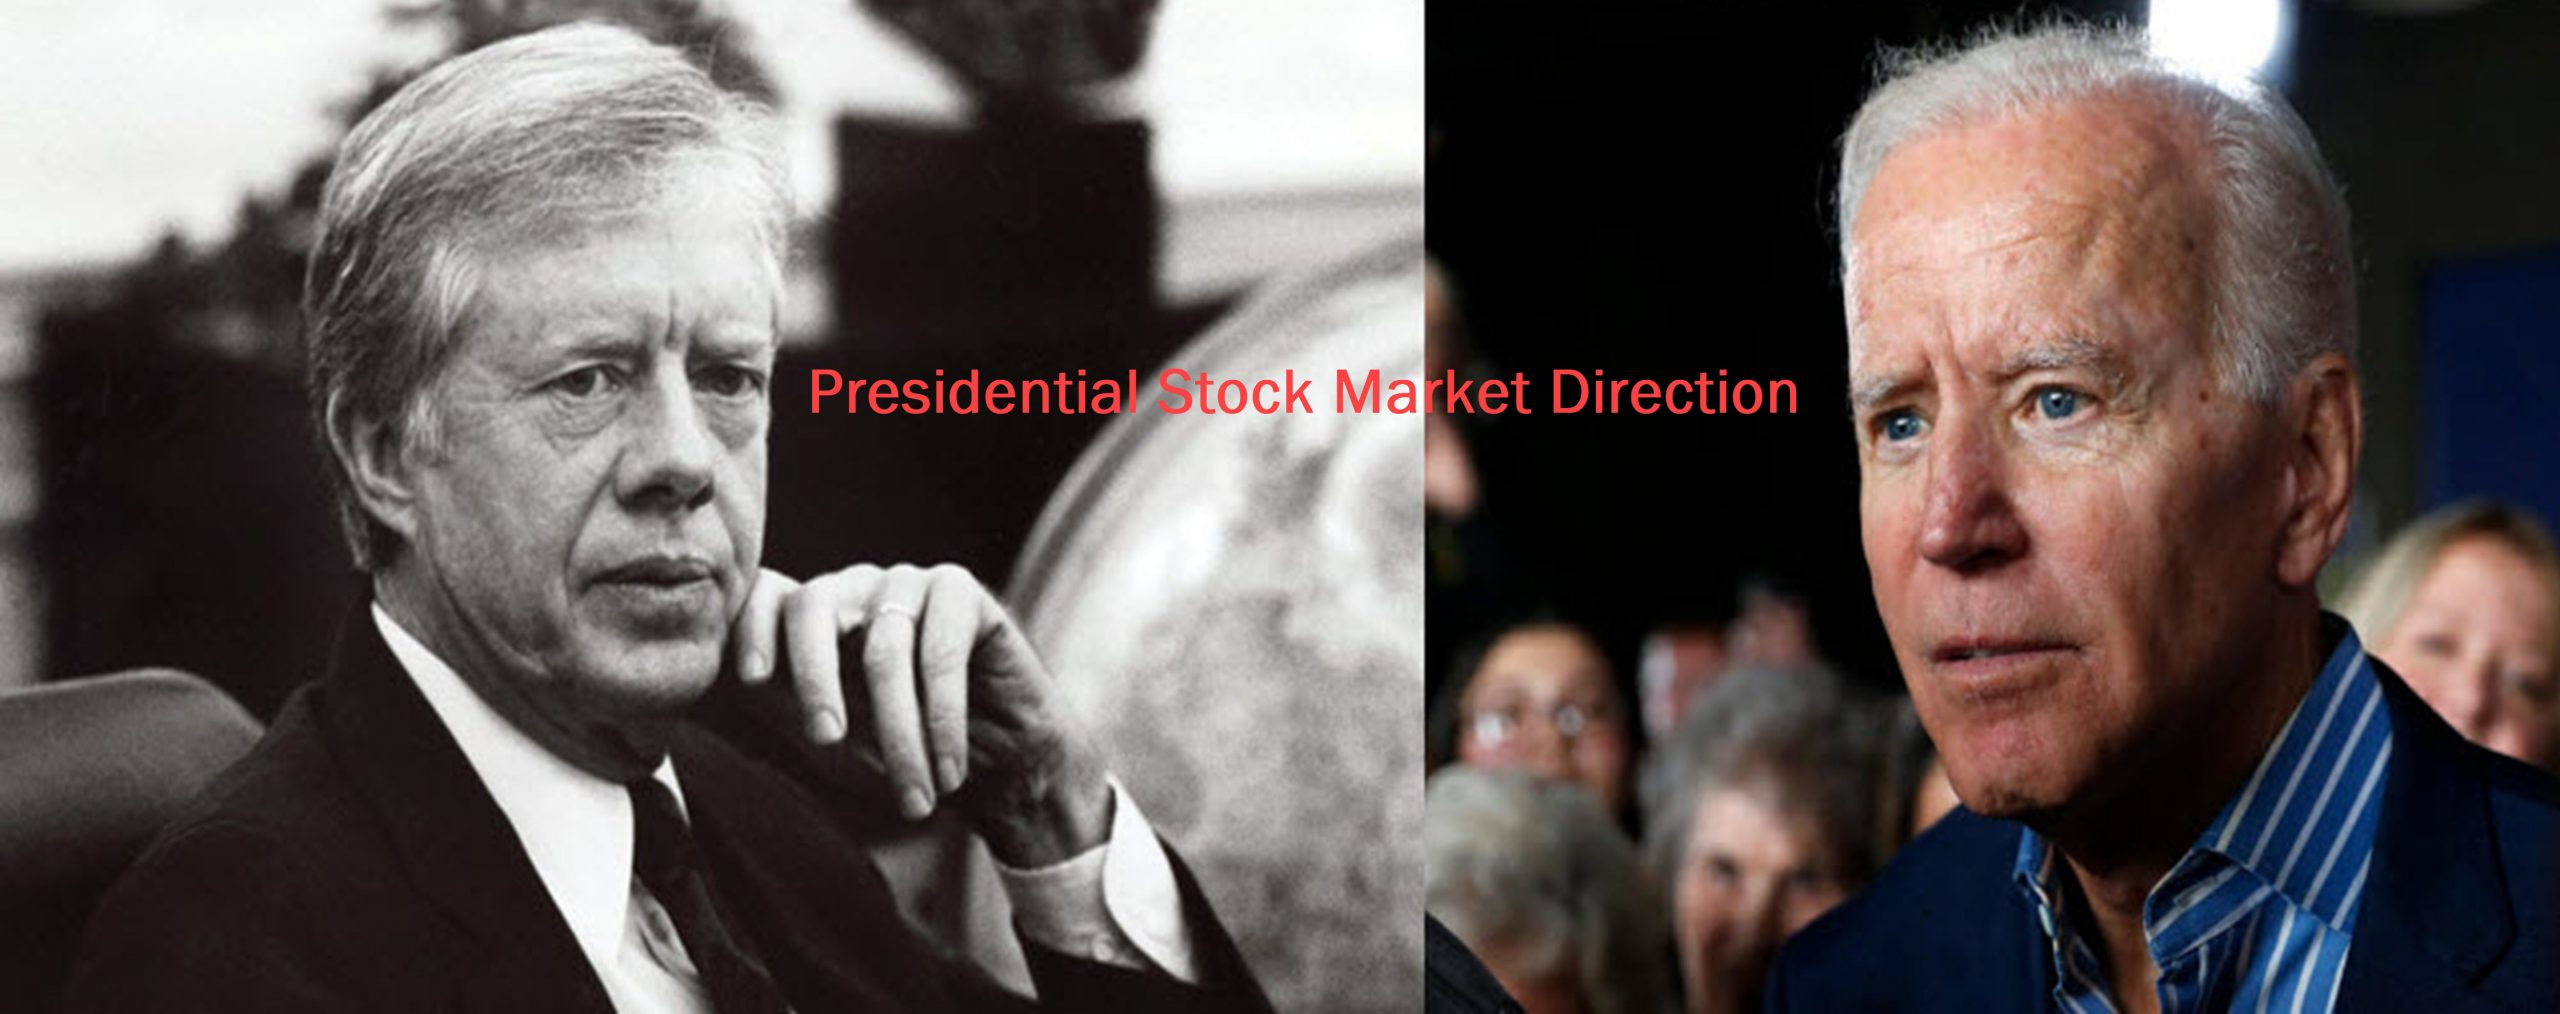 Presidential Stock Market Direction